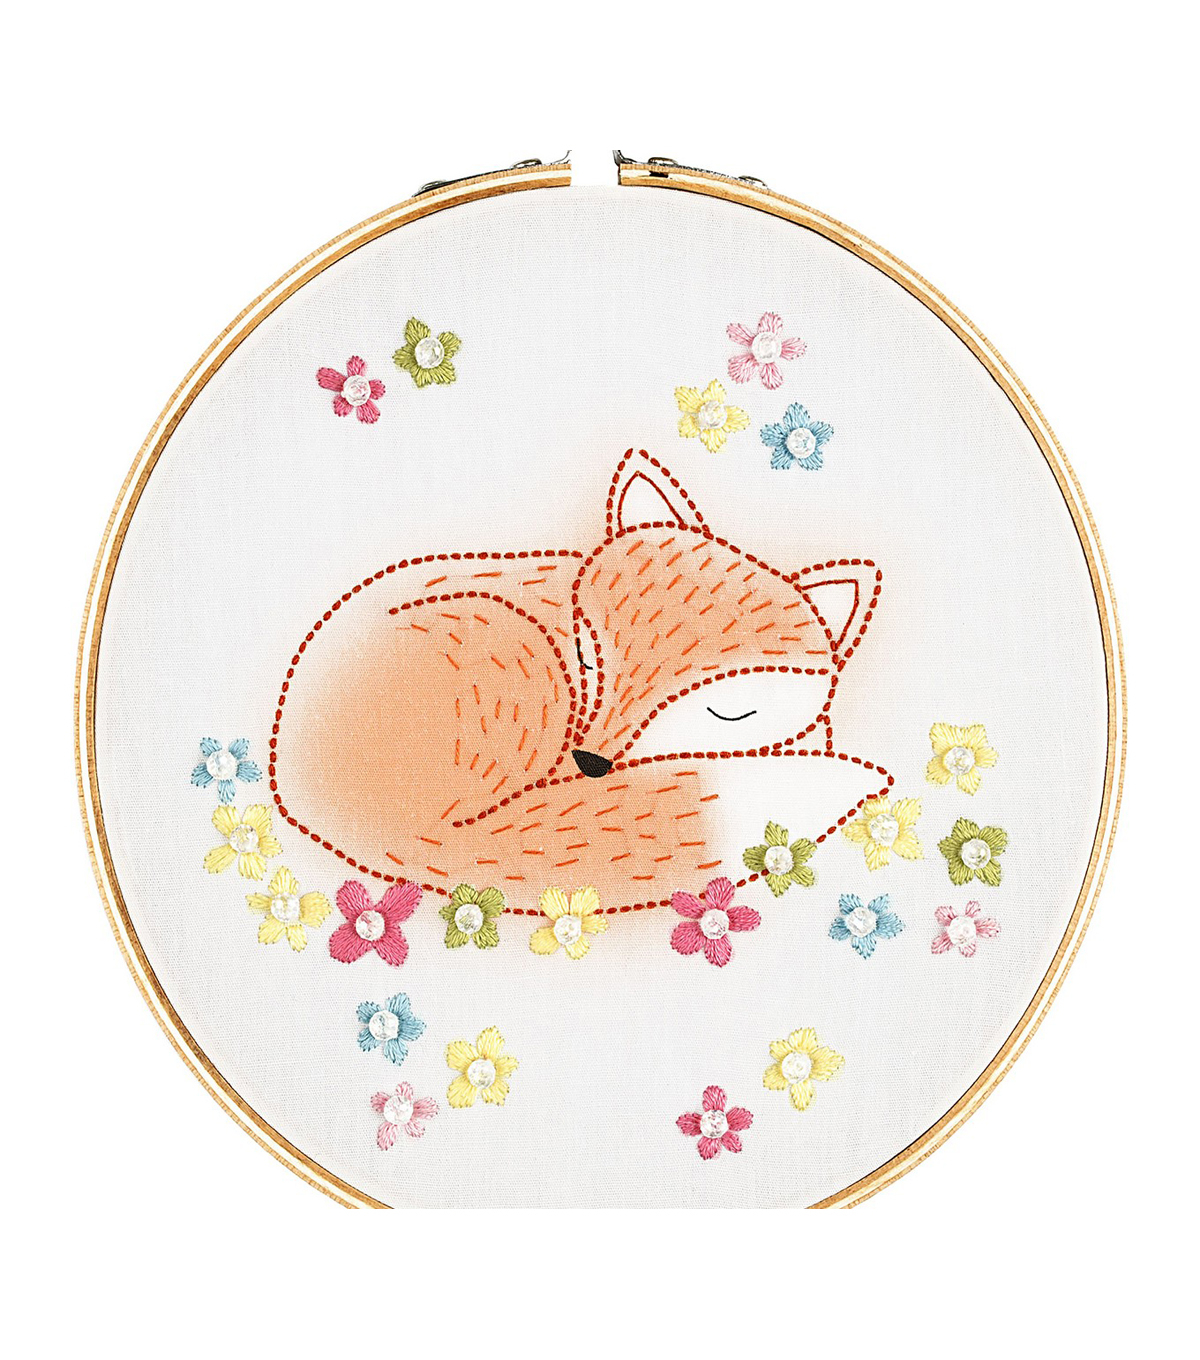 Stamped Embroidery Patterns Needle Creations Make It Easy Peasy 6 Stamped Embroidery Hoop Kit Fox